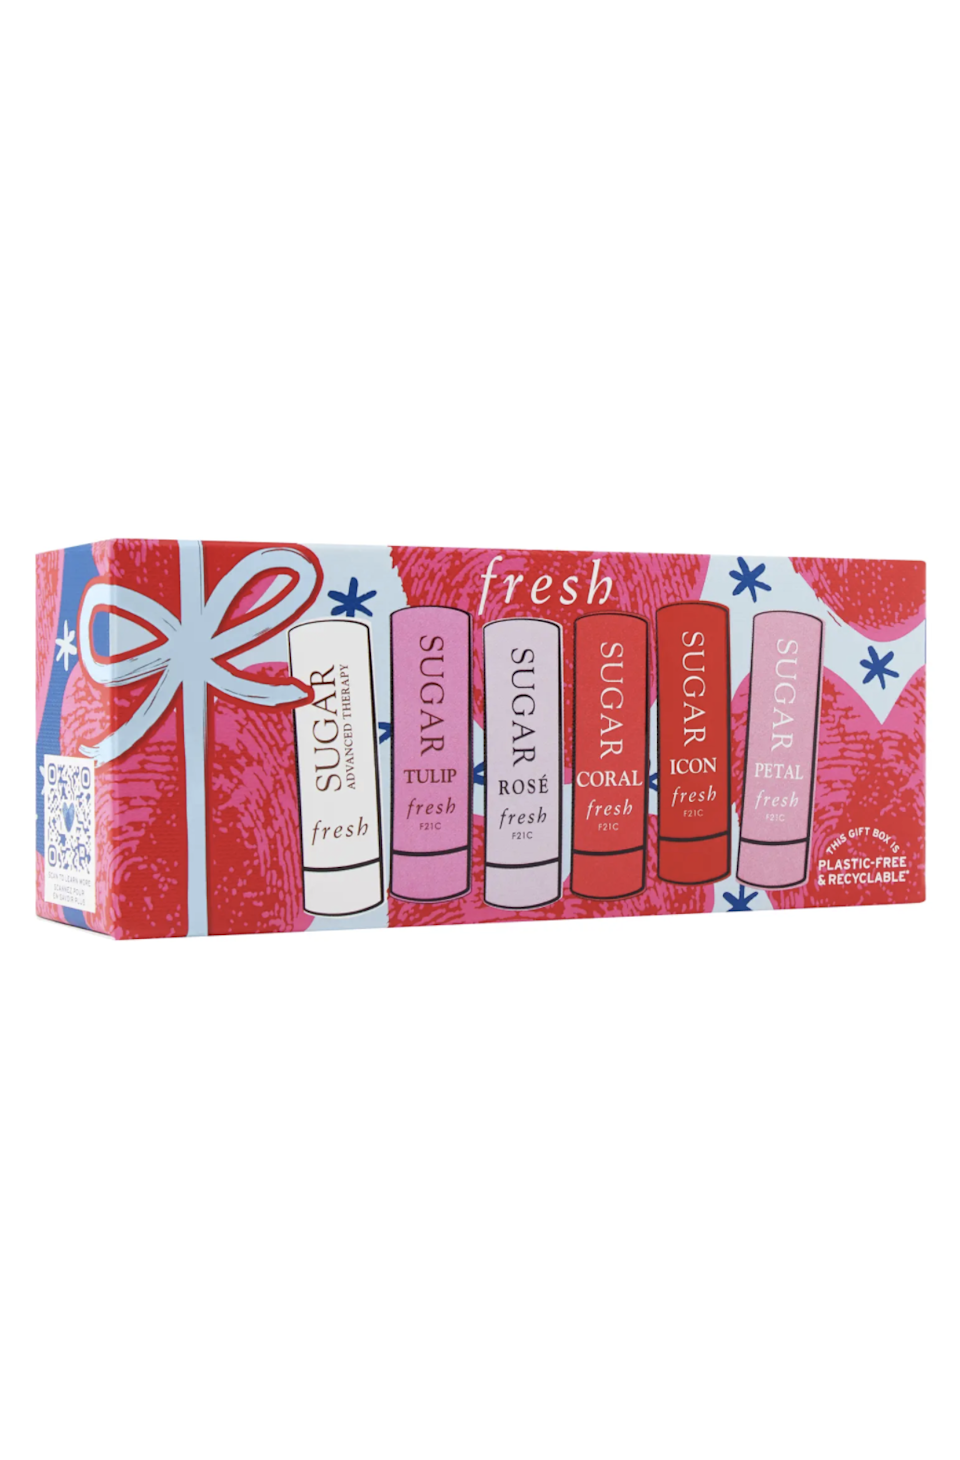 """<h2>Fresh Sugar Hydrating Lip Minis Set</h2><br>This chic set offers a <a href=""""https://www.refinery29.com/en-us/tinted-lip-balms"""" rel=""""nofollow noopener"""" target=""""_blank"""" data-ylk=""""slk:tinted lip balm"""" class=""""link rapid-noclick-resp"""">tinted lip balm</a> (<a href=""""https://www.refinery29.com/en-us/lip-balms-spf-protection"""" rel=""""nofollow noopener"""" target=""""_blank"""" data-ylk=""""slk:with SPF"""" class=""""link rapid-noclick-resp"""">with SPF</a>!) for every mood. <br><br><strong>Fresh</strong> Sugar Hydrating Lip Minis Set, $, available at <a href=""""https://go.skimresources.com/?id=30283X879131&url=https%3A%2F%2Fwww.nordstrom.com%2Fs%2Ffresh-sugar-hydrating-lip-minis-set-nordstrom-exclusive-usd-75-value%2F6481909"""" rel=""""nofollow noopener"""" target=""""_blank"""" data-ylk=""""slk:Nordstrom"""" class=""""link rapid-noclick-resp"""">Nordstrom</a>"""